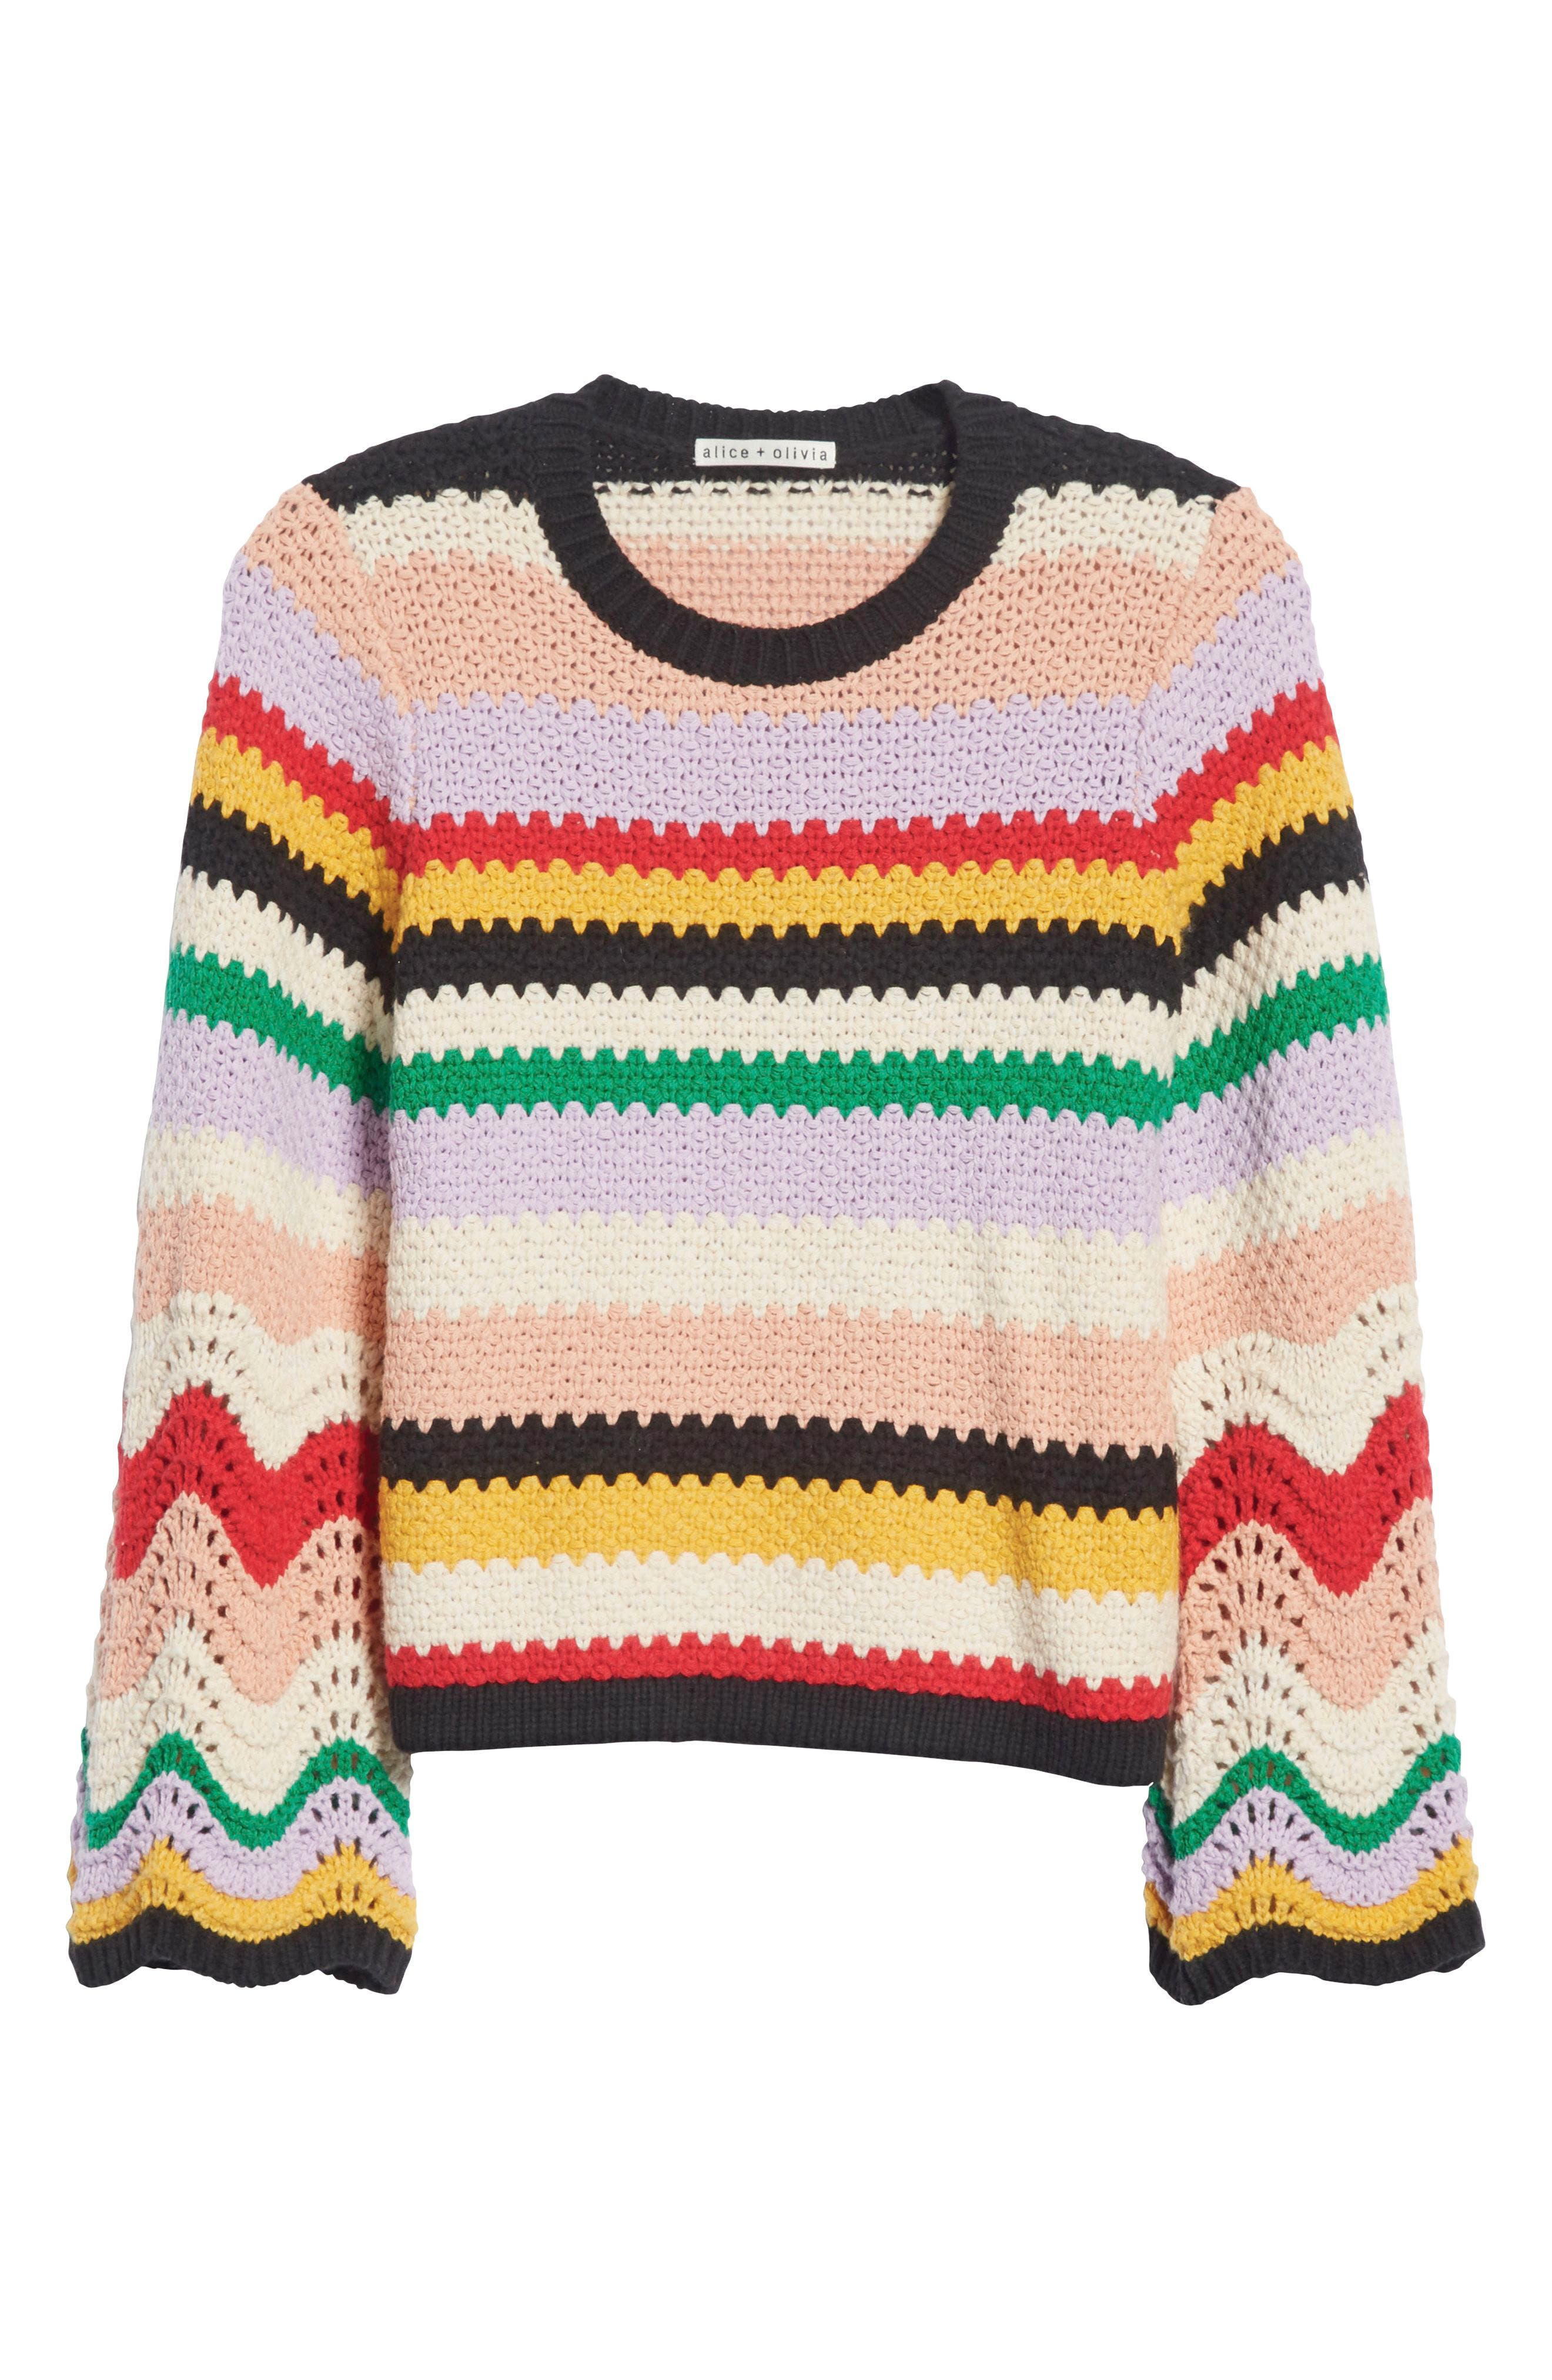 ALICE + OLIVIA,                             Alivia Stripe Bell Sleeve Cotton Blend Sweater,                             Alternate thumbnail 7, color,                             MULTI